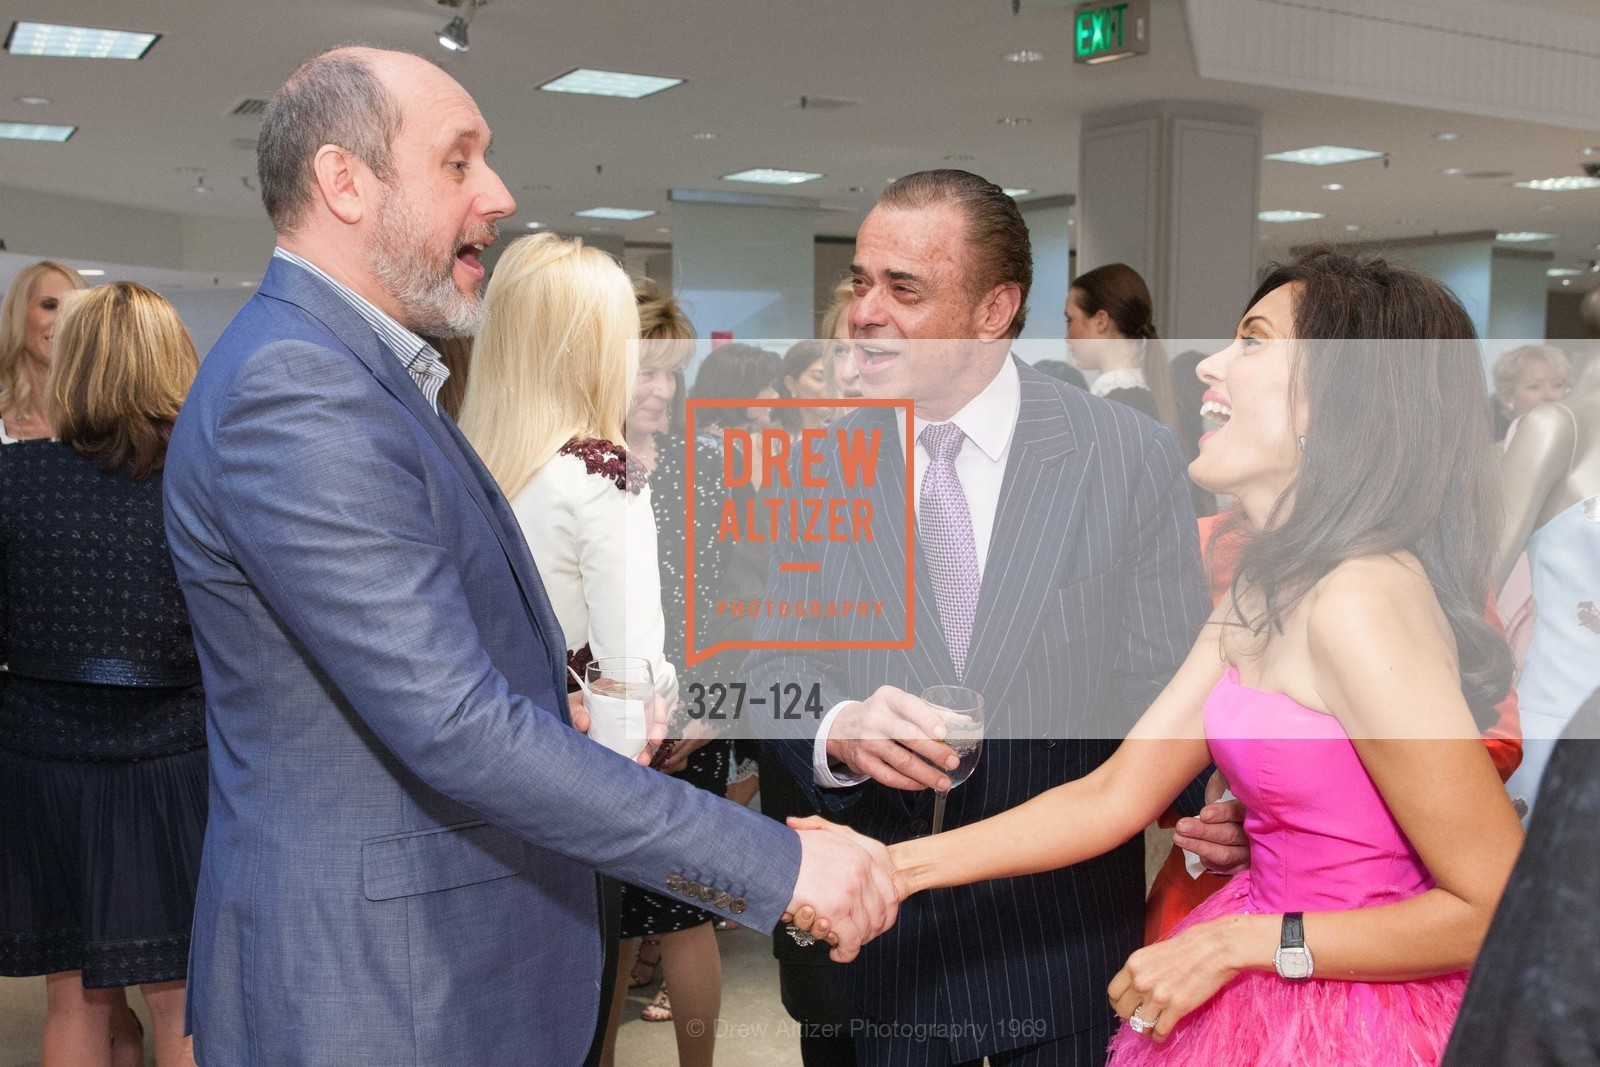 Peter Copping, Boaz Mazor, Komal Shah, Saks Fifth Avenue hosts the Peter Copping Personal Appearance, Saks Fifth Ave. 384 Post St, May 20th, 2015,Drew Altizer, Drew Altizer Photography, full-service agency, private events, San Francisco photographer, photographer california